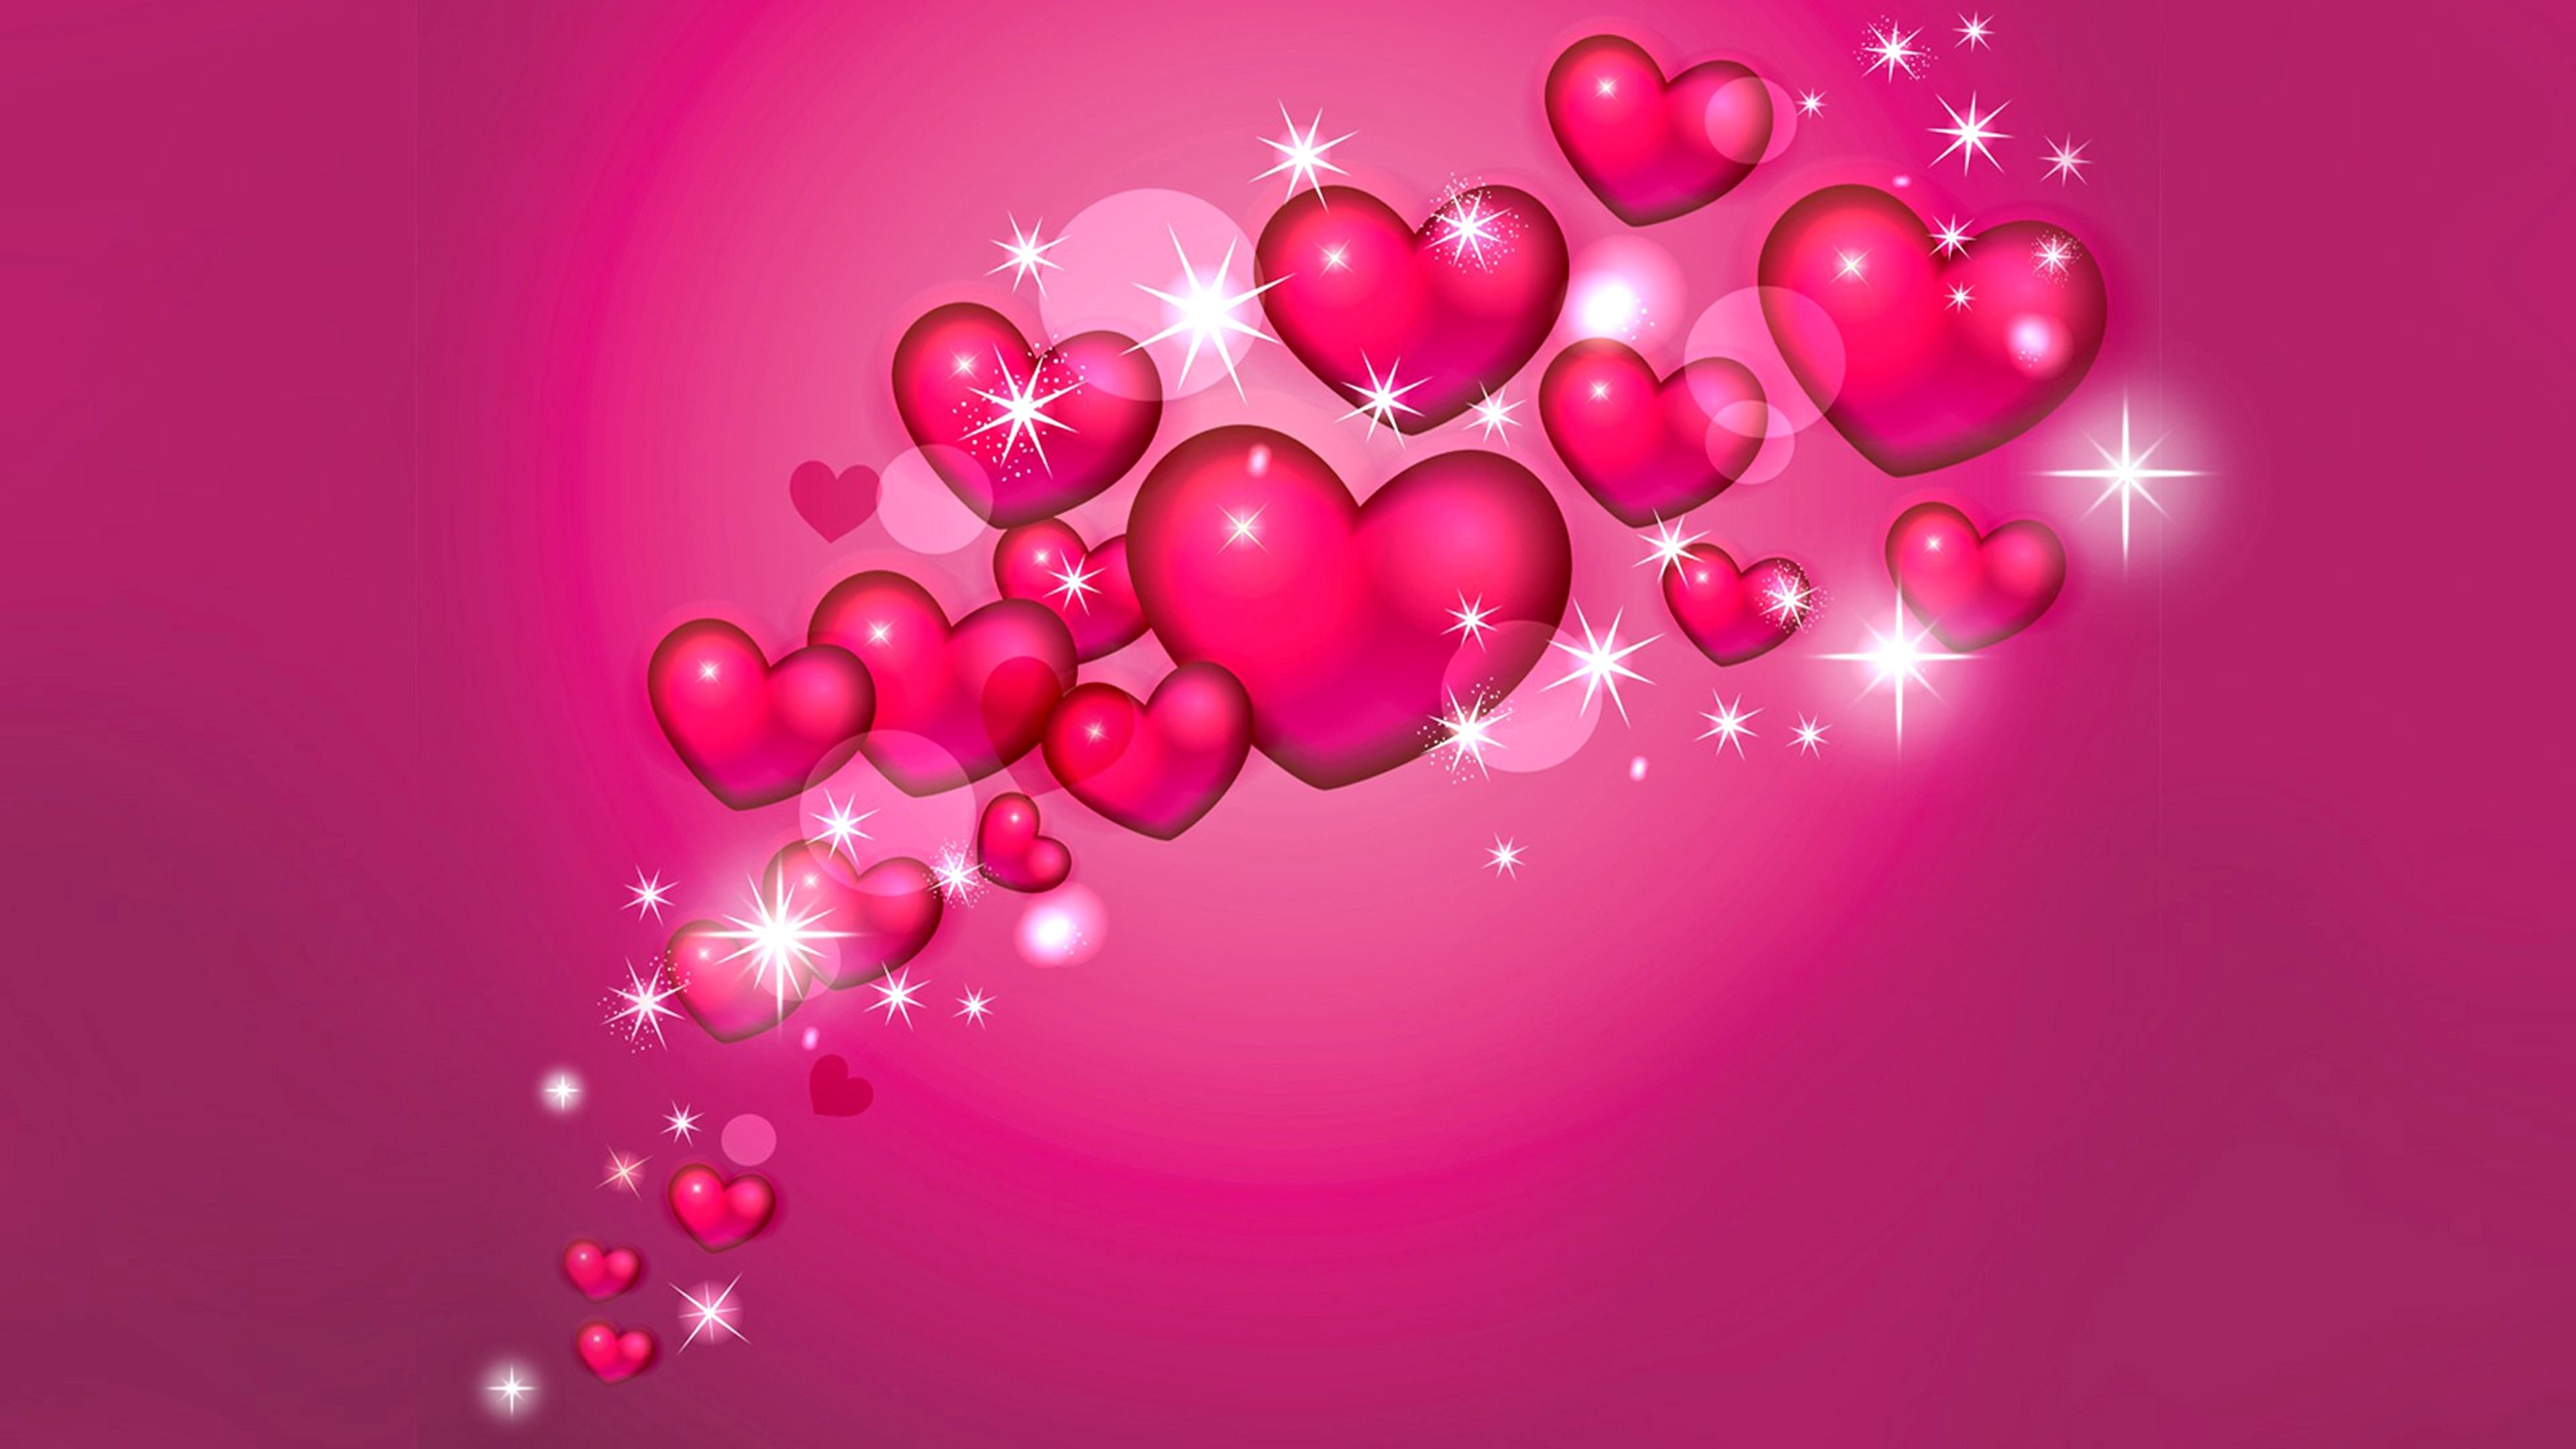 Cute Heart Wallpapers Download Hearts Background Wallpaper 61 Images